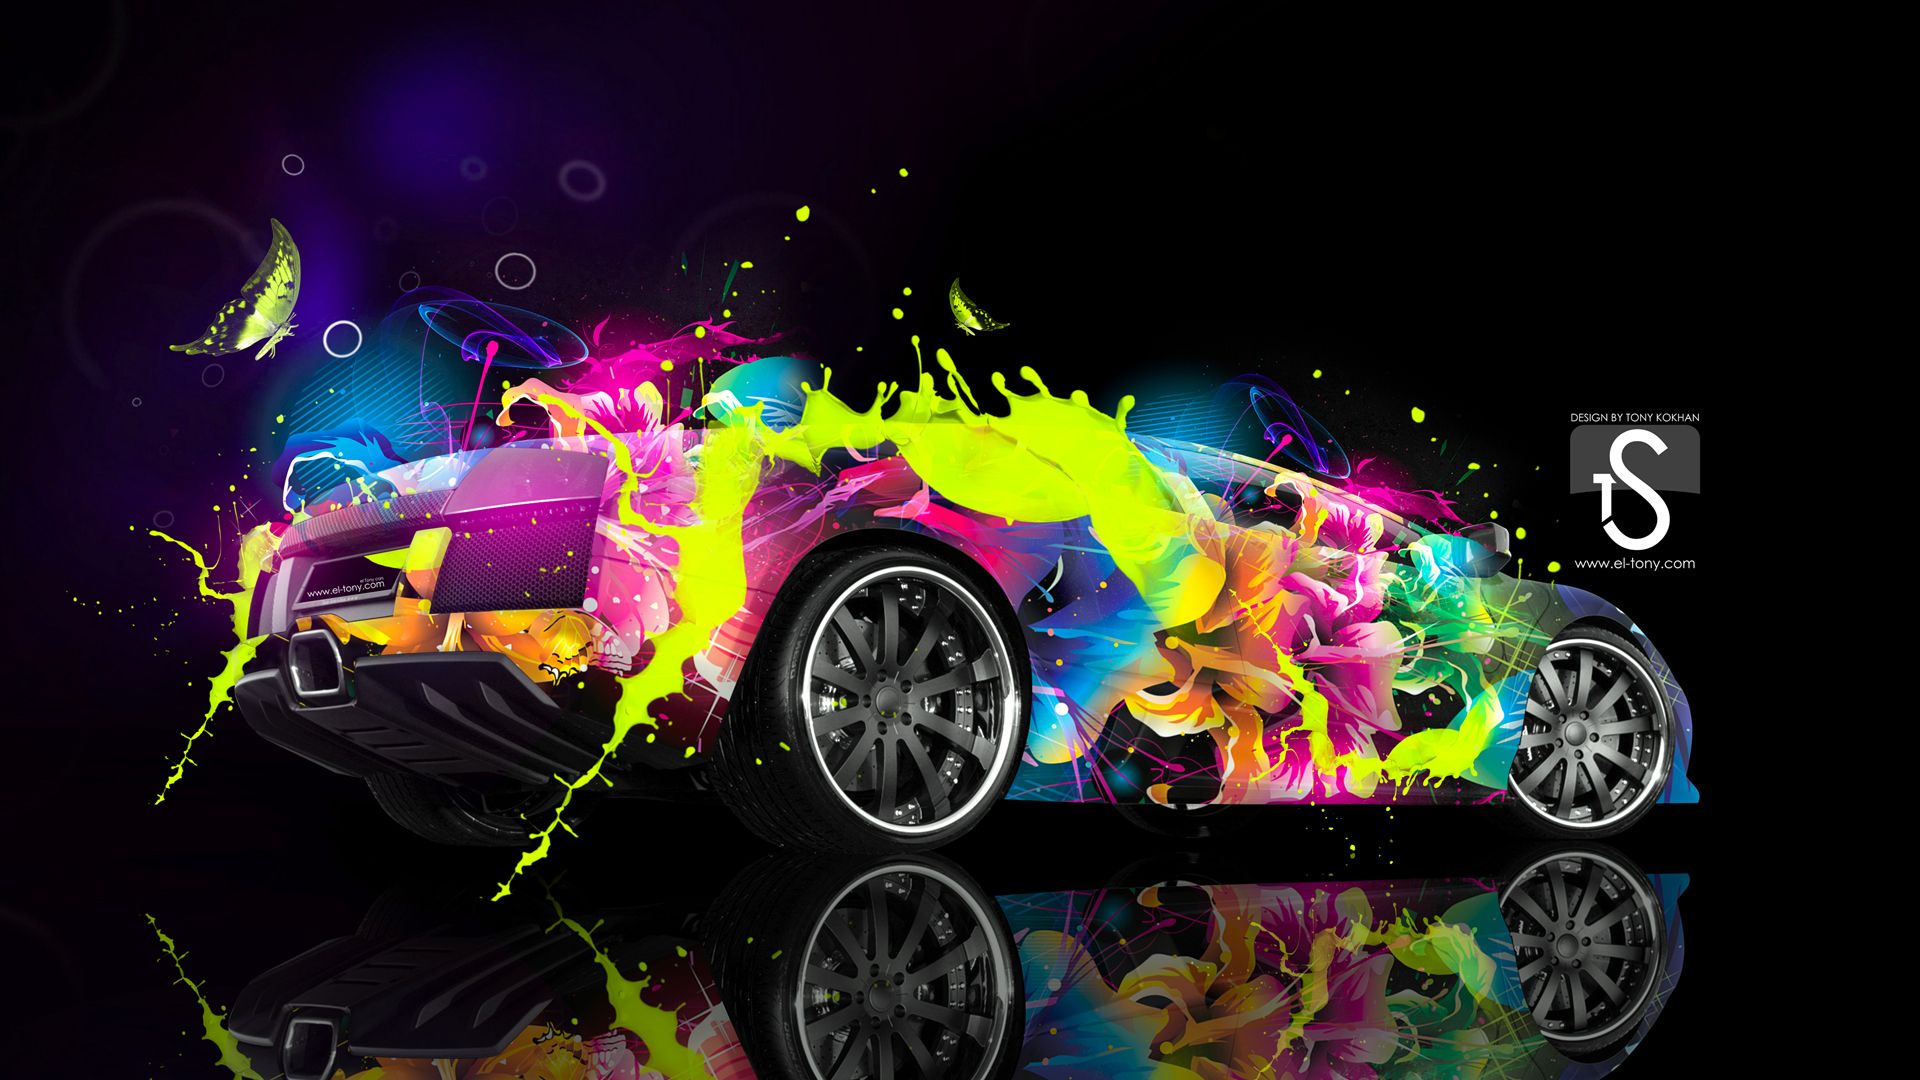 Wallpaper Fondos De Pantalla Rosario Contreras: Colorful Cars Wallpaper Full HD #s2w1t5 1920x1080 Px 1.05